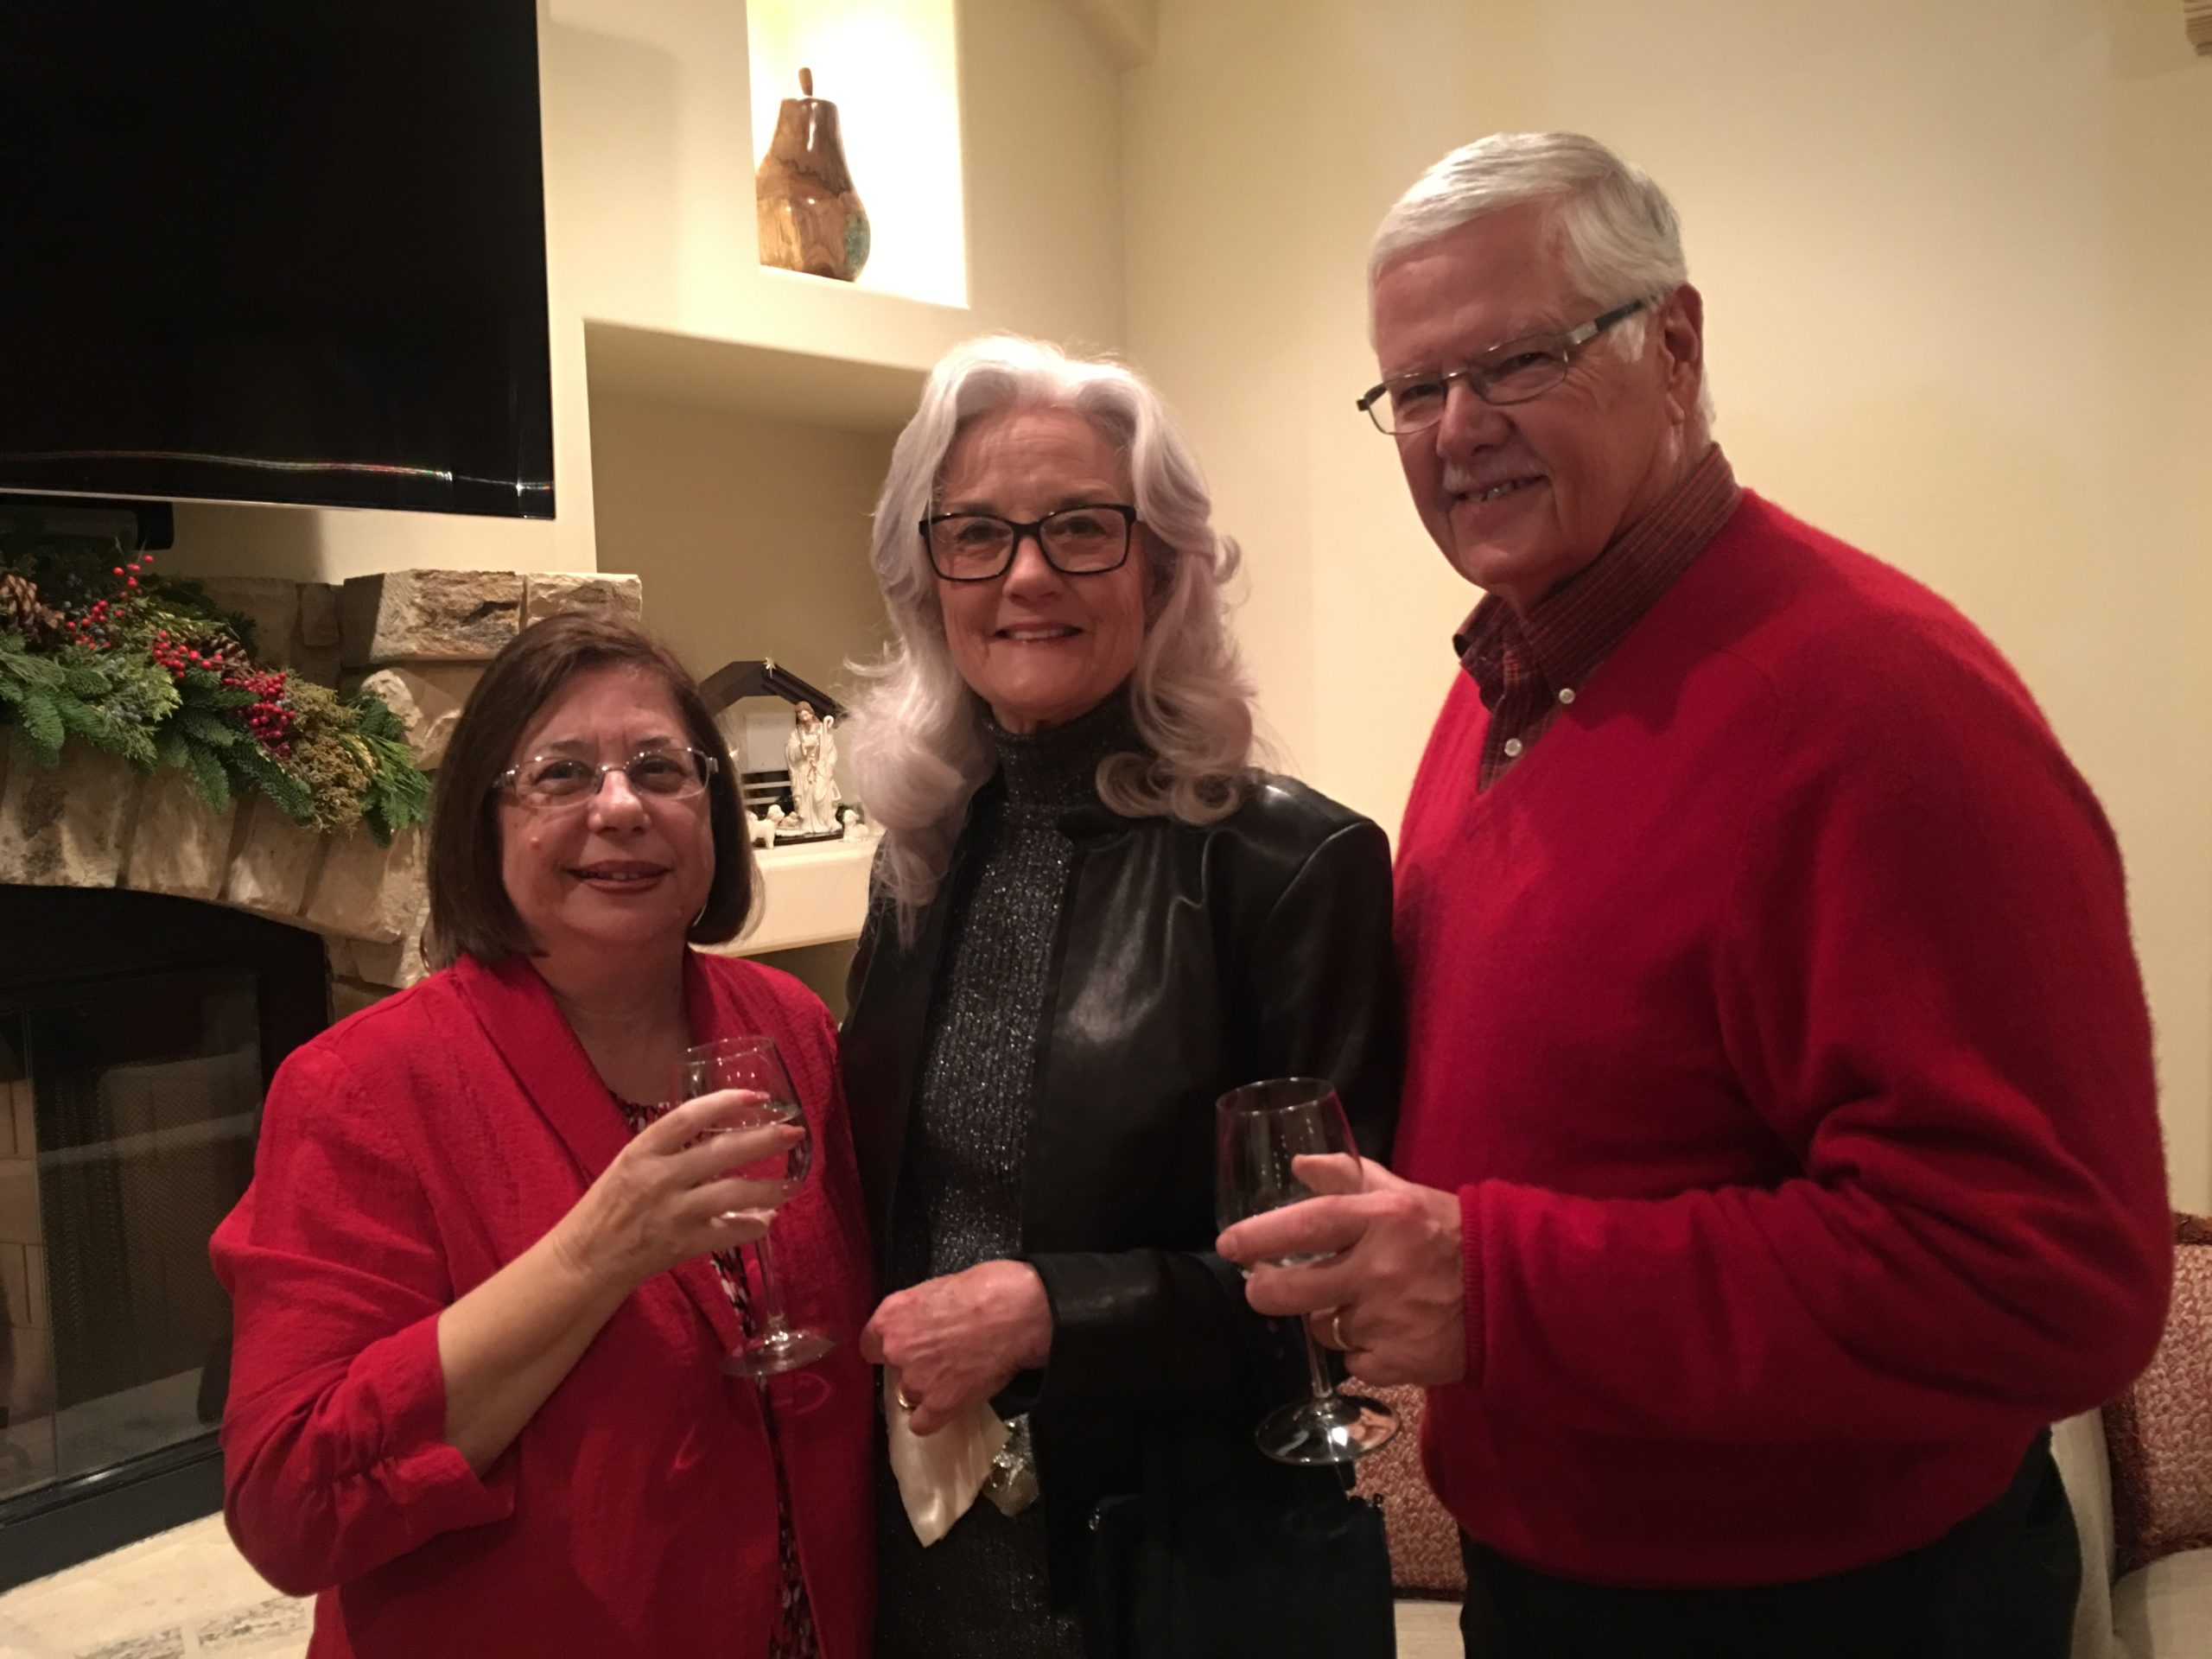 Photo of Nancy Becker, Ted Becker and Friend at Gilroy Foundation's Holiday Party 2018